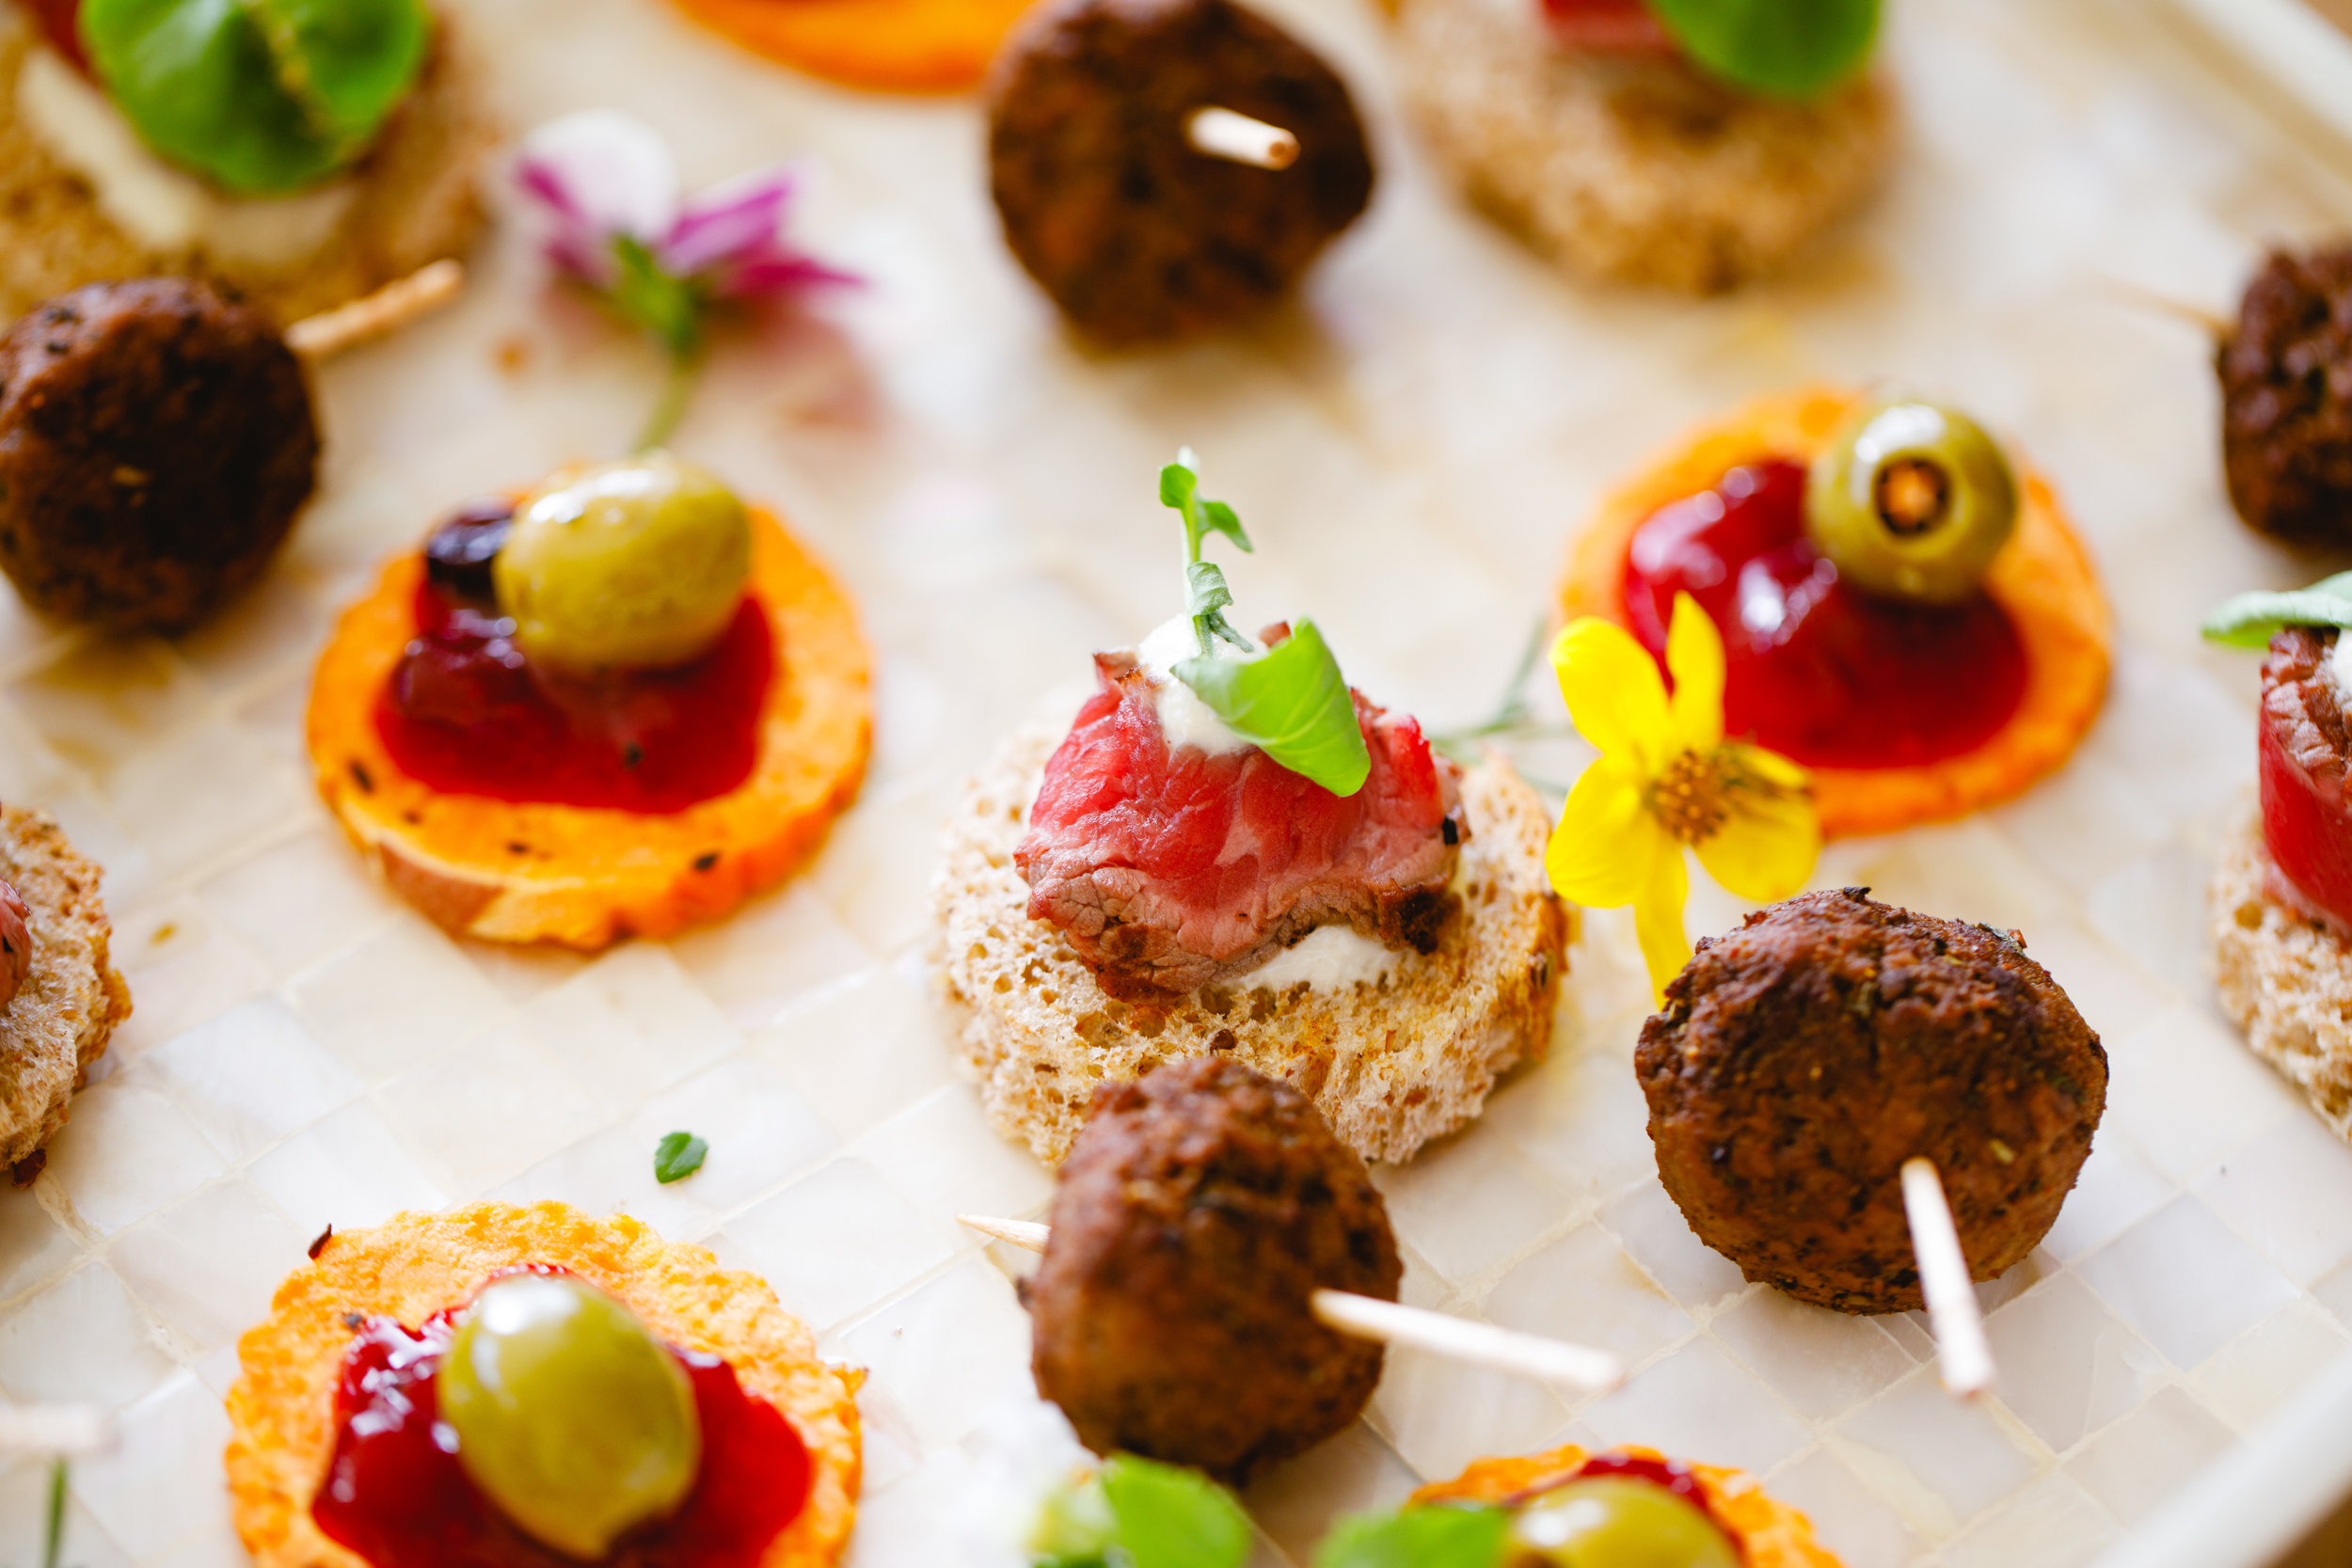 Whet your guests appetite with a taste of what's to come. The perfect way to welcome your guests to any event. Our Chefs have dedicated canapé menu's to suit each style of event.